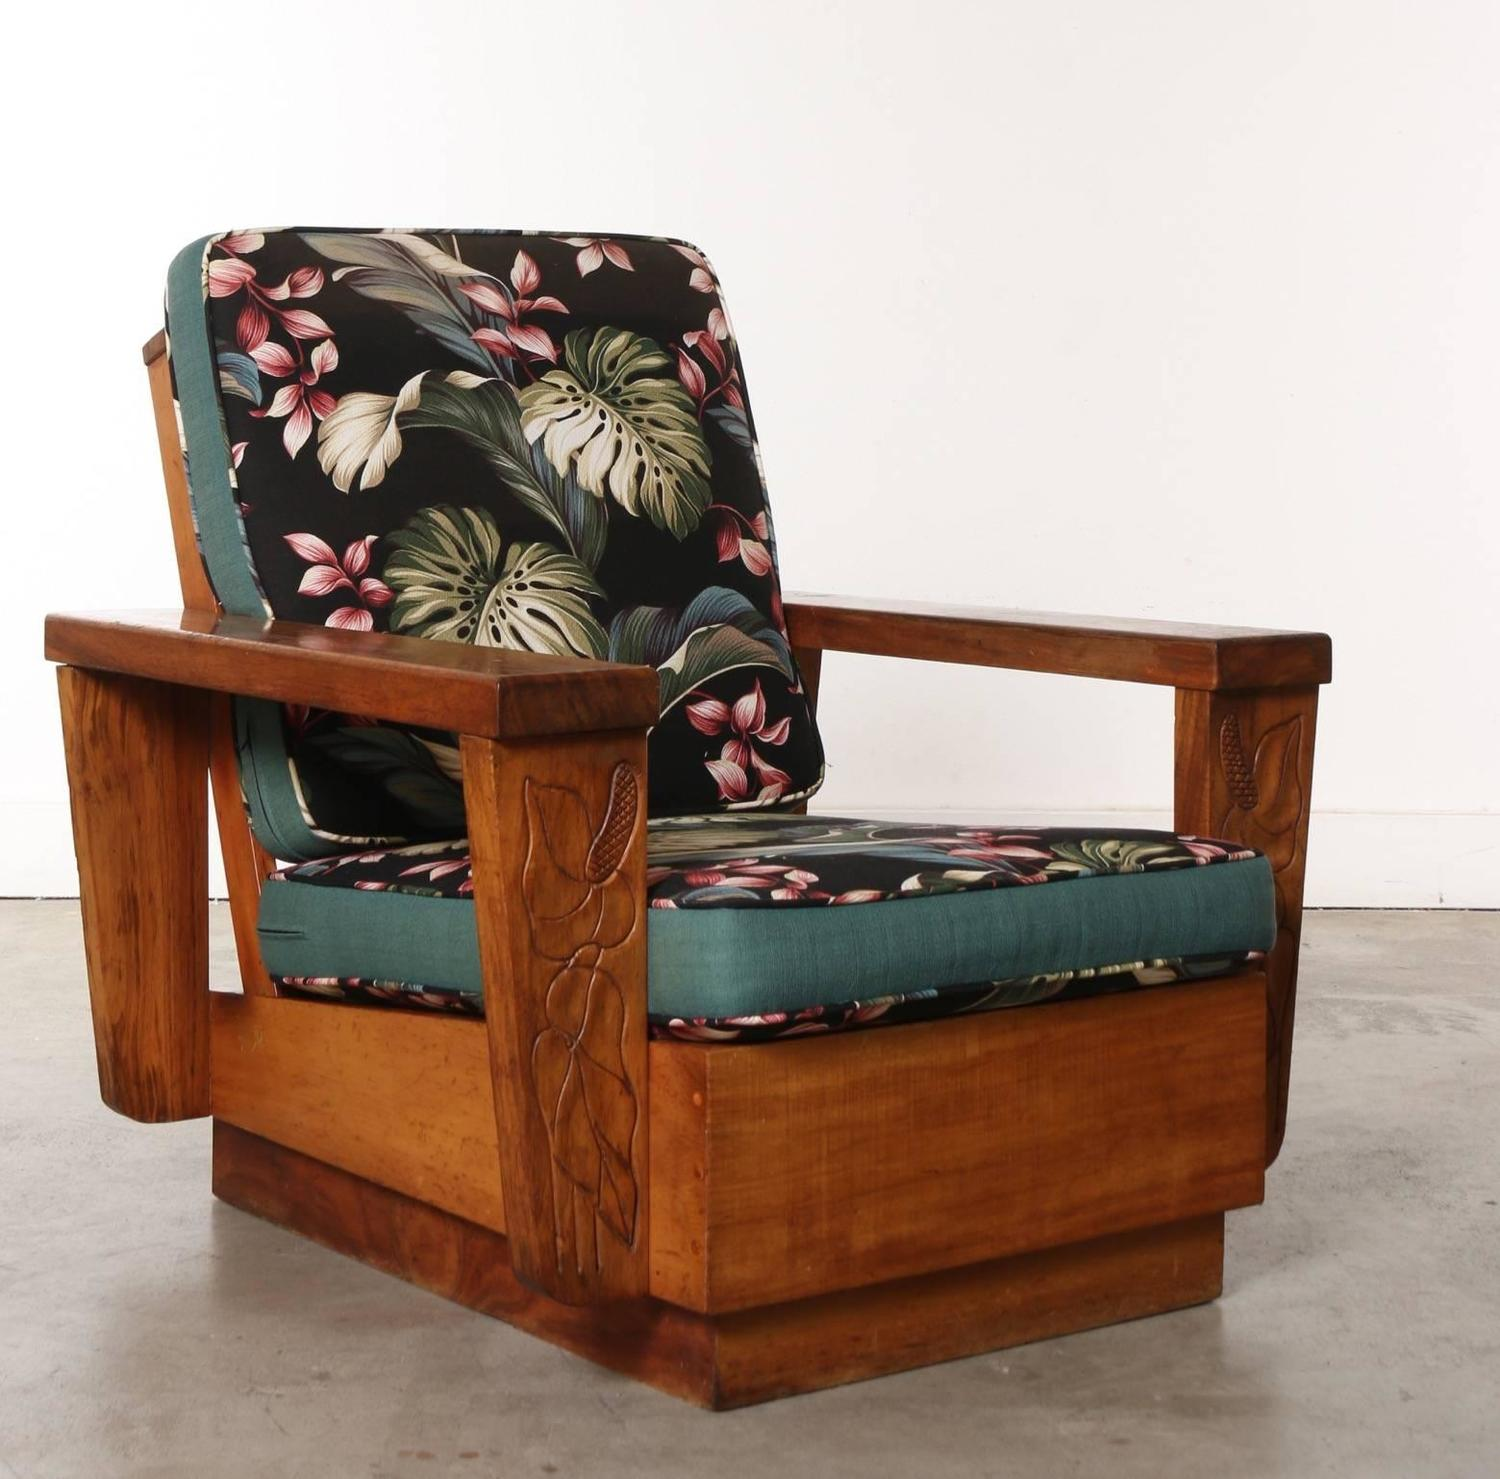 Wooden Furniture For Sale: Pair Of 1940s Hawaiian Koa Wood Club Chair At 1stdibs